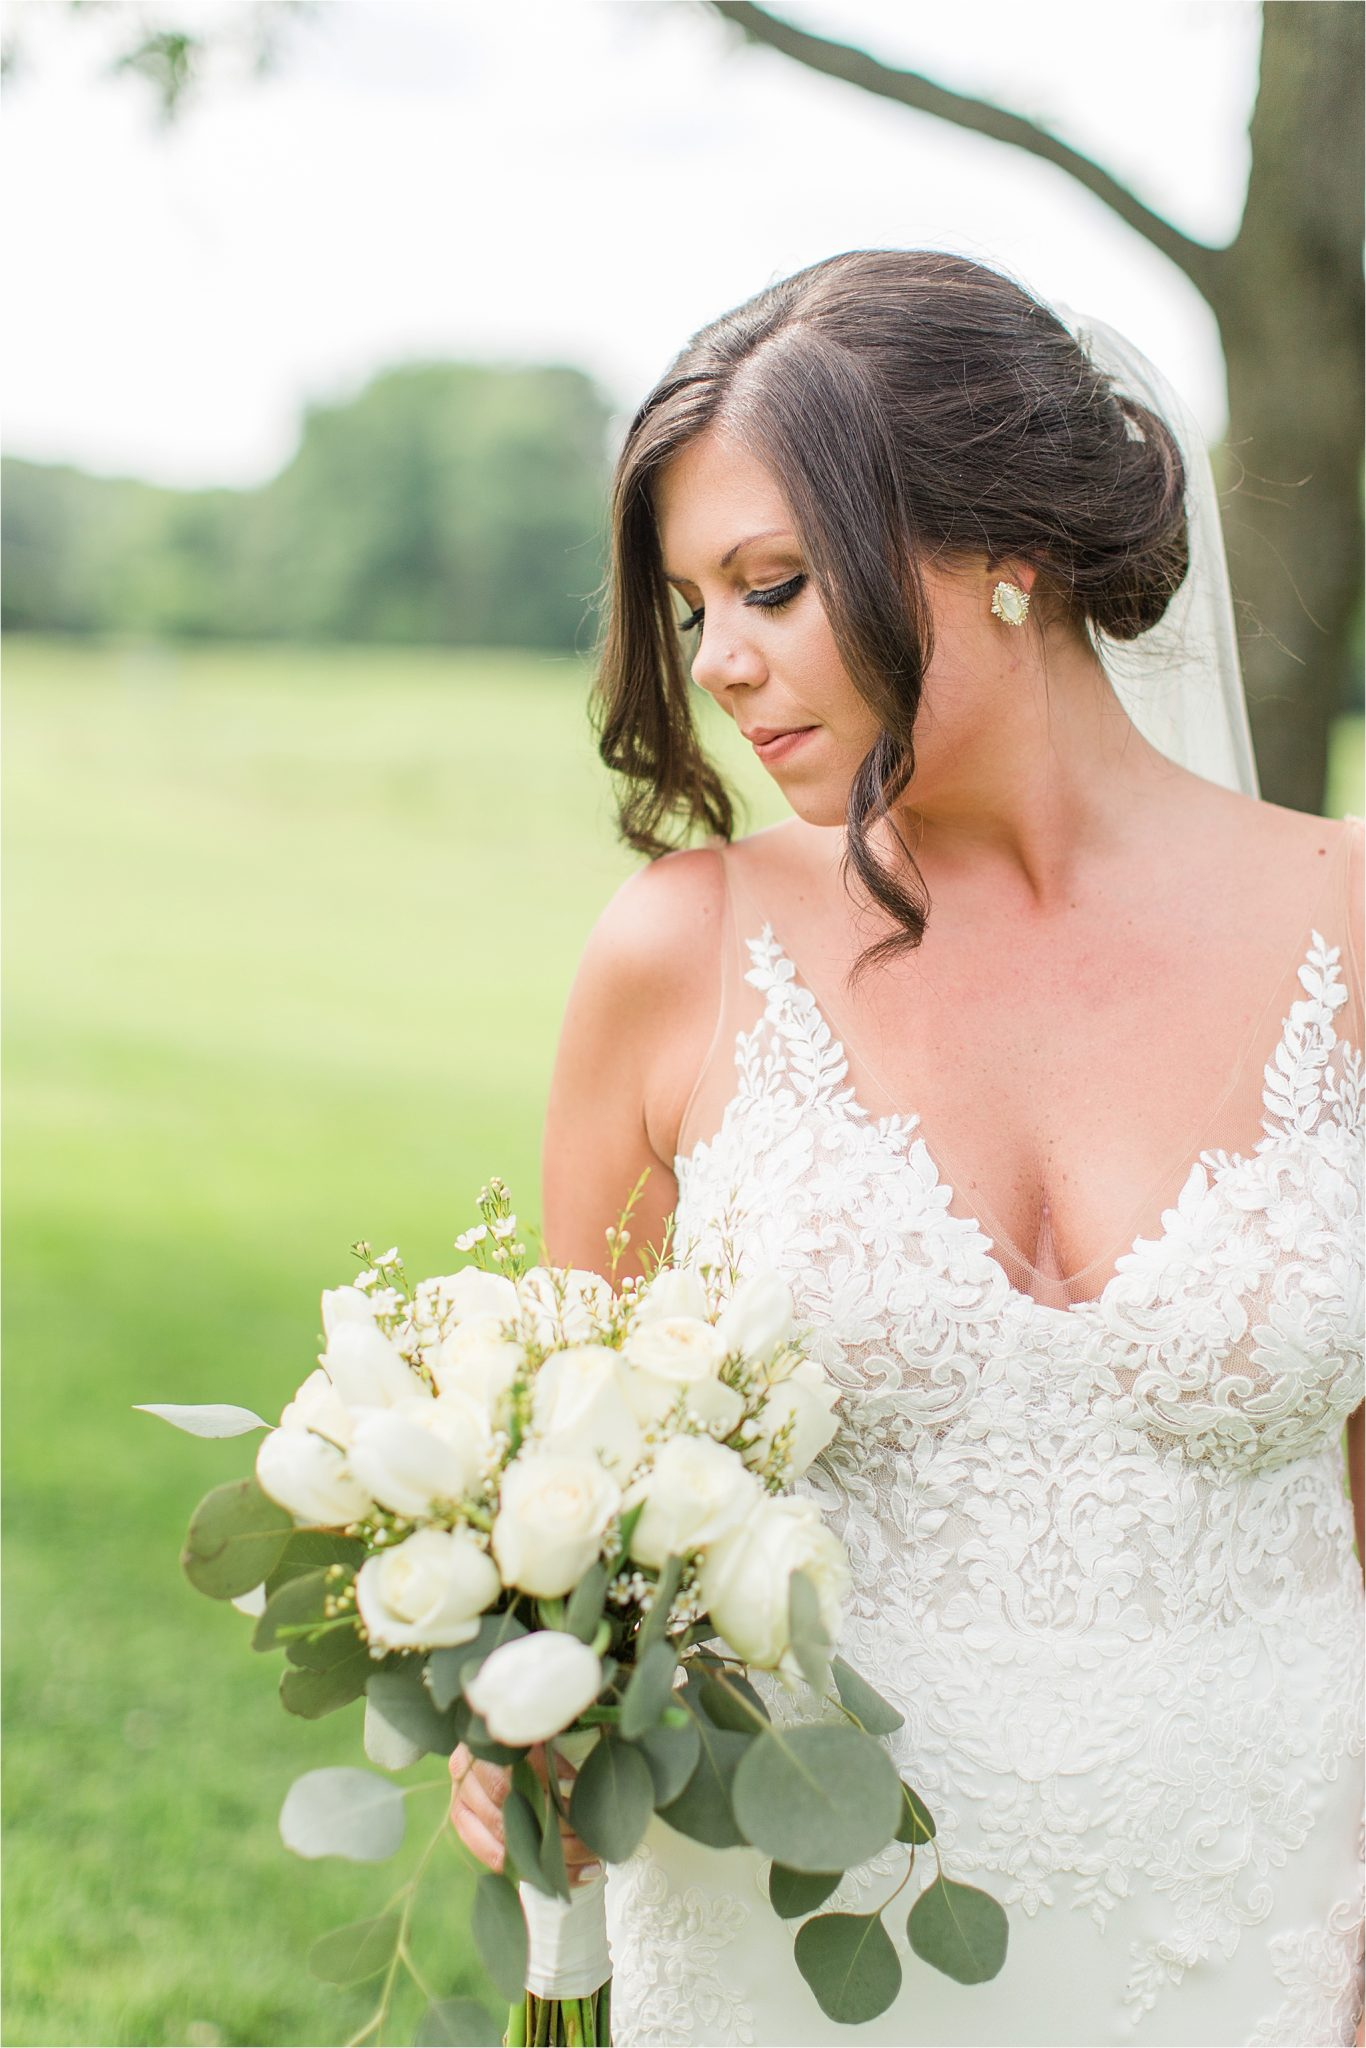 Hedge Farm Wedding, Alabama Wedding Photographer, Barn Wedding, Bride, Neutrals, Wedding florals